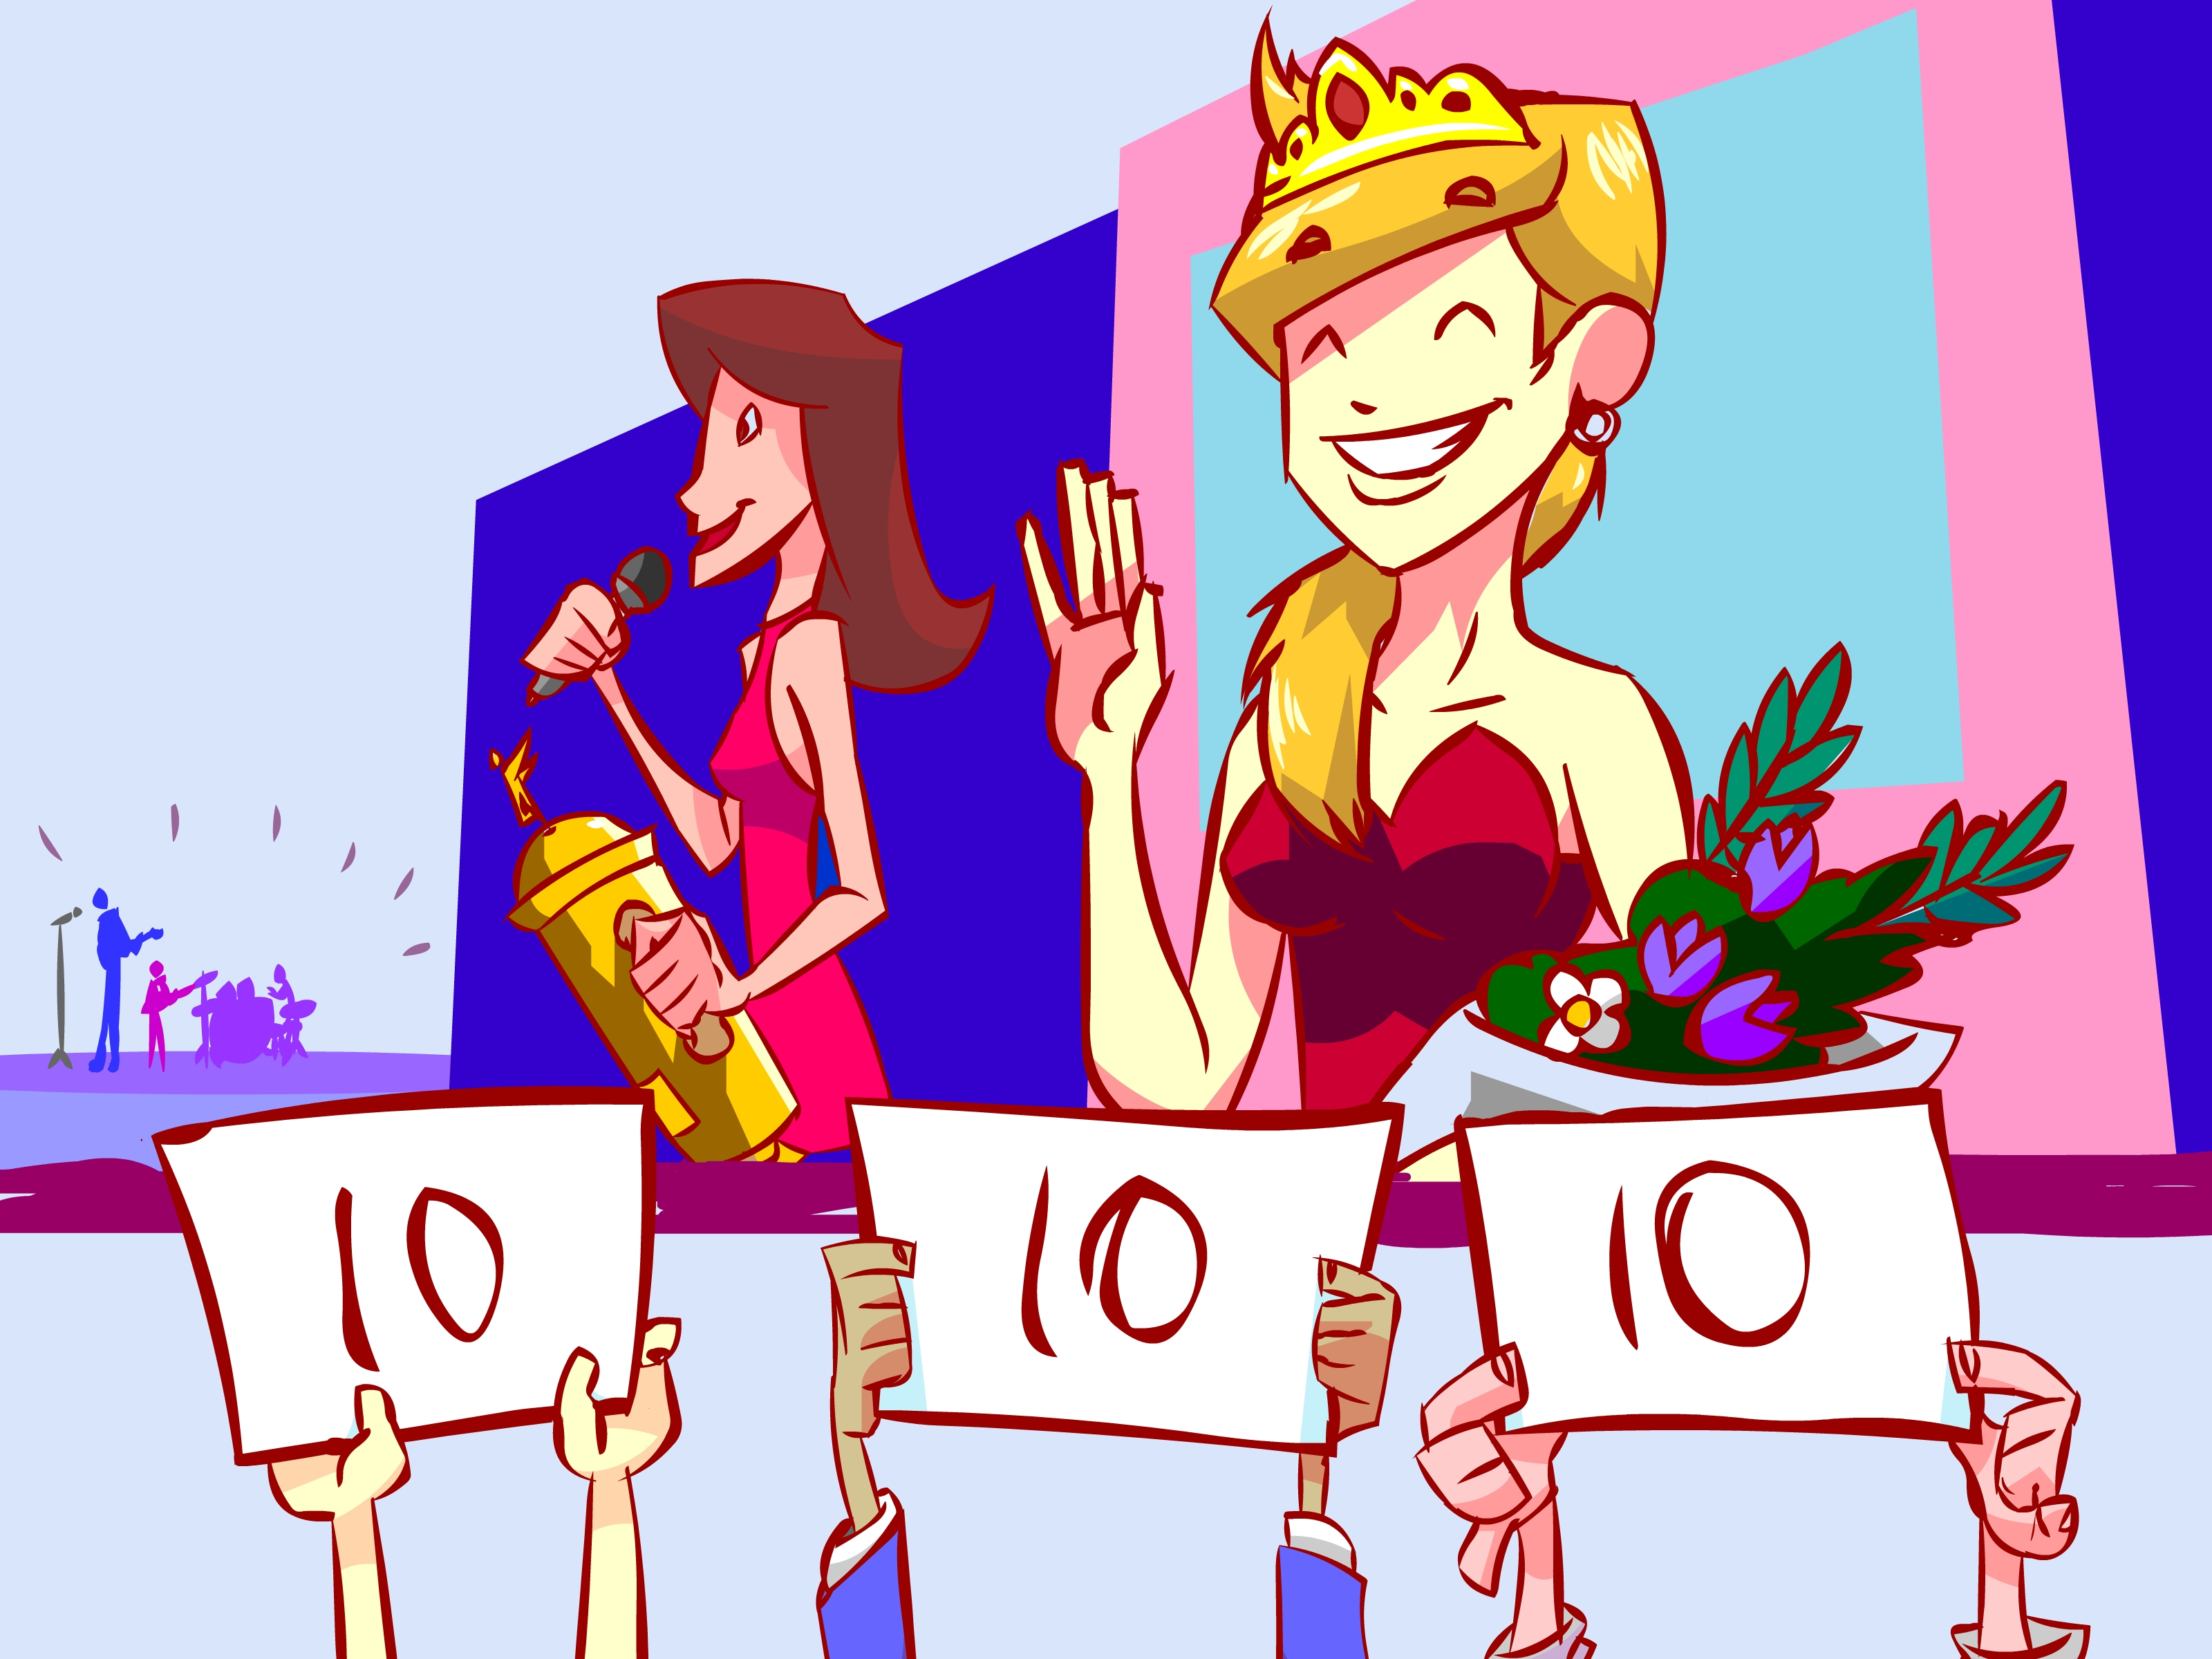 Womanless beauty pageant clipart vector transparent download How to Form a Beauty Pageant: 9 Steps (with Pictures) - wikiHow vector transparent download